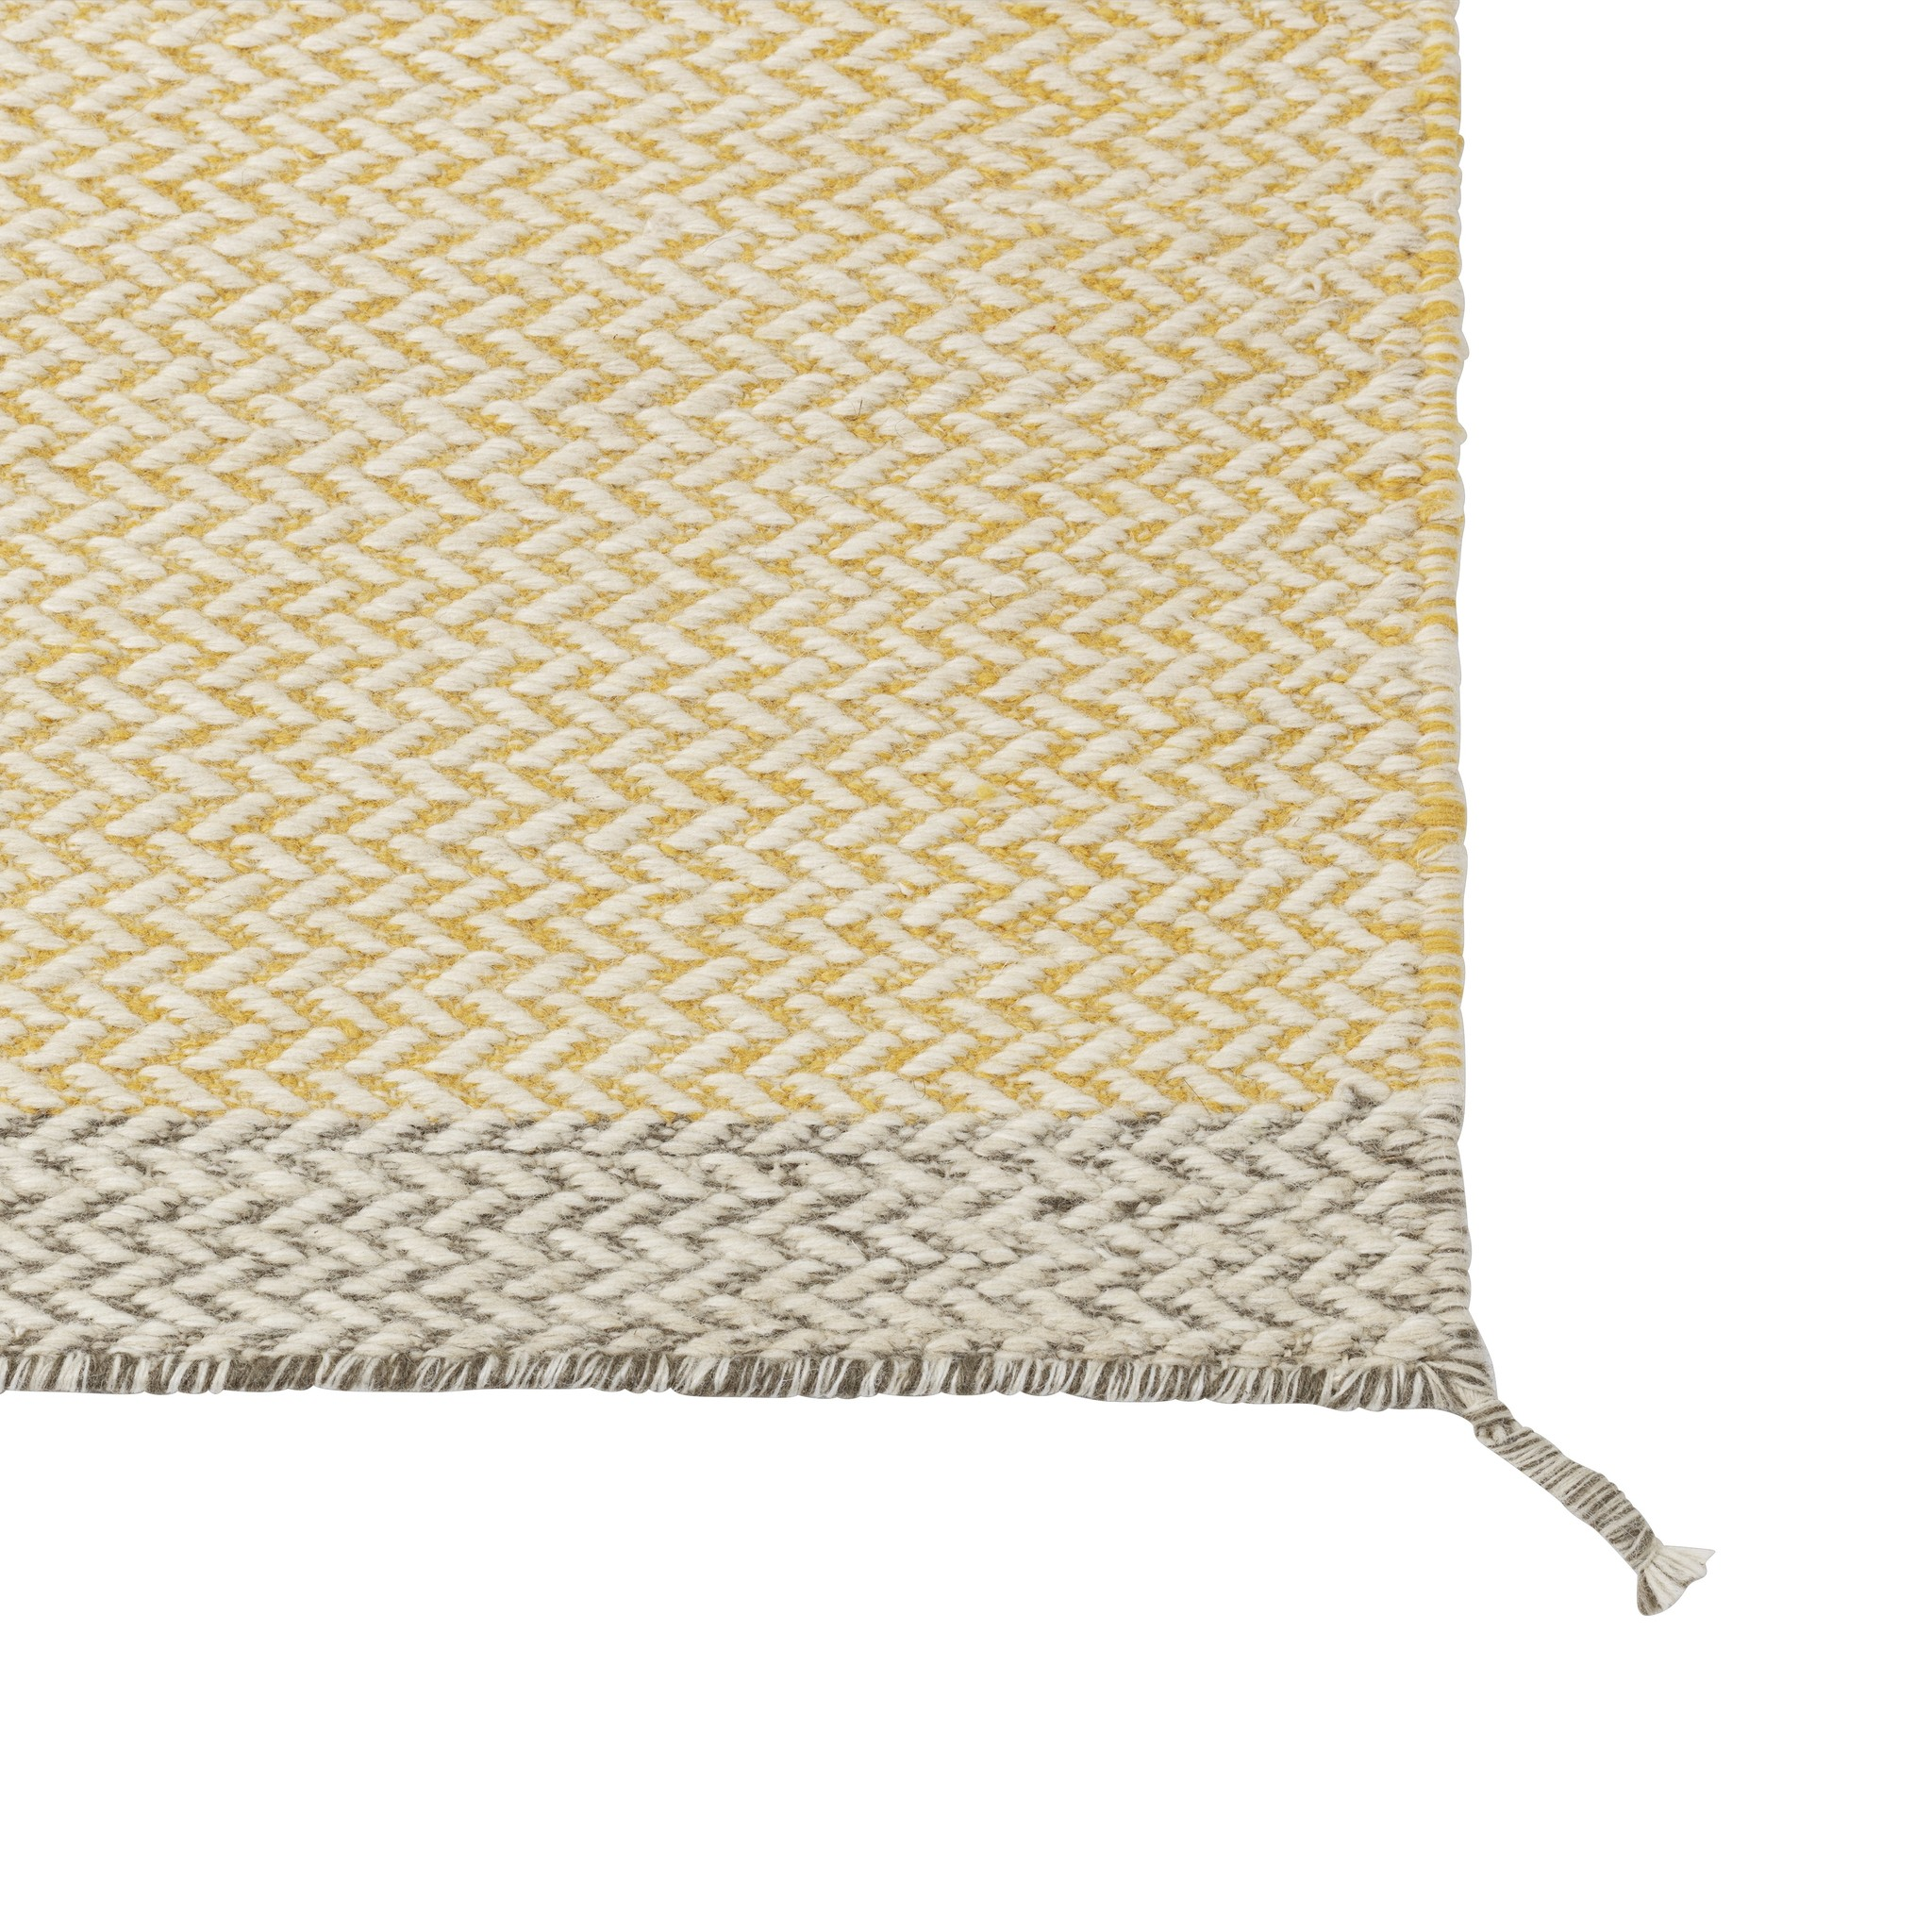 Ply Rug-5